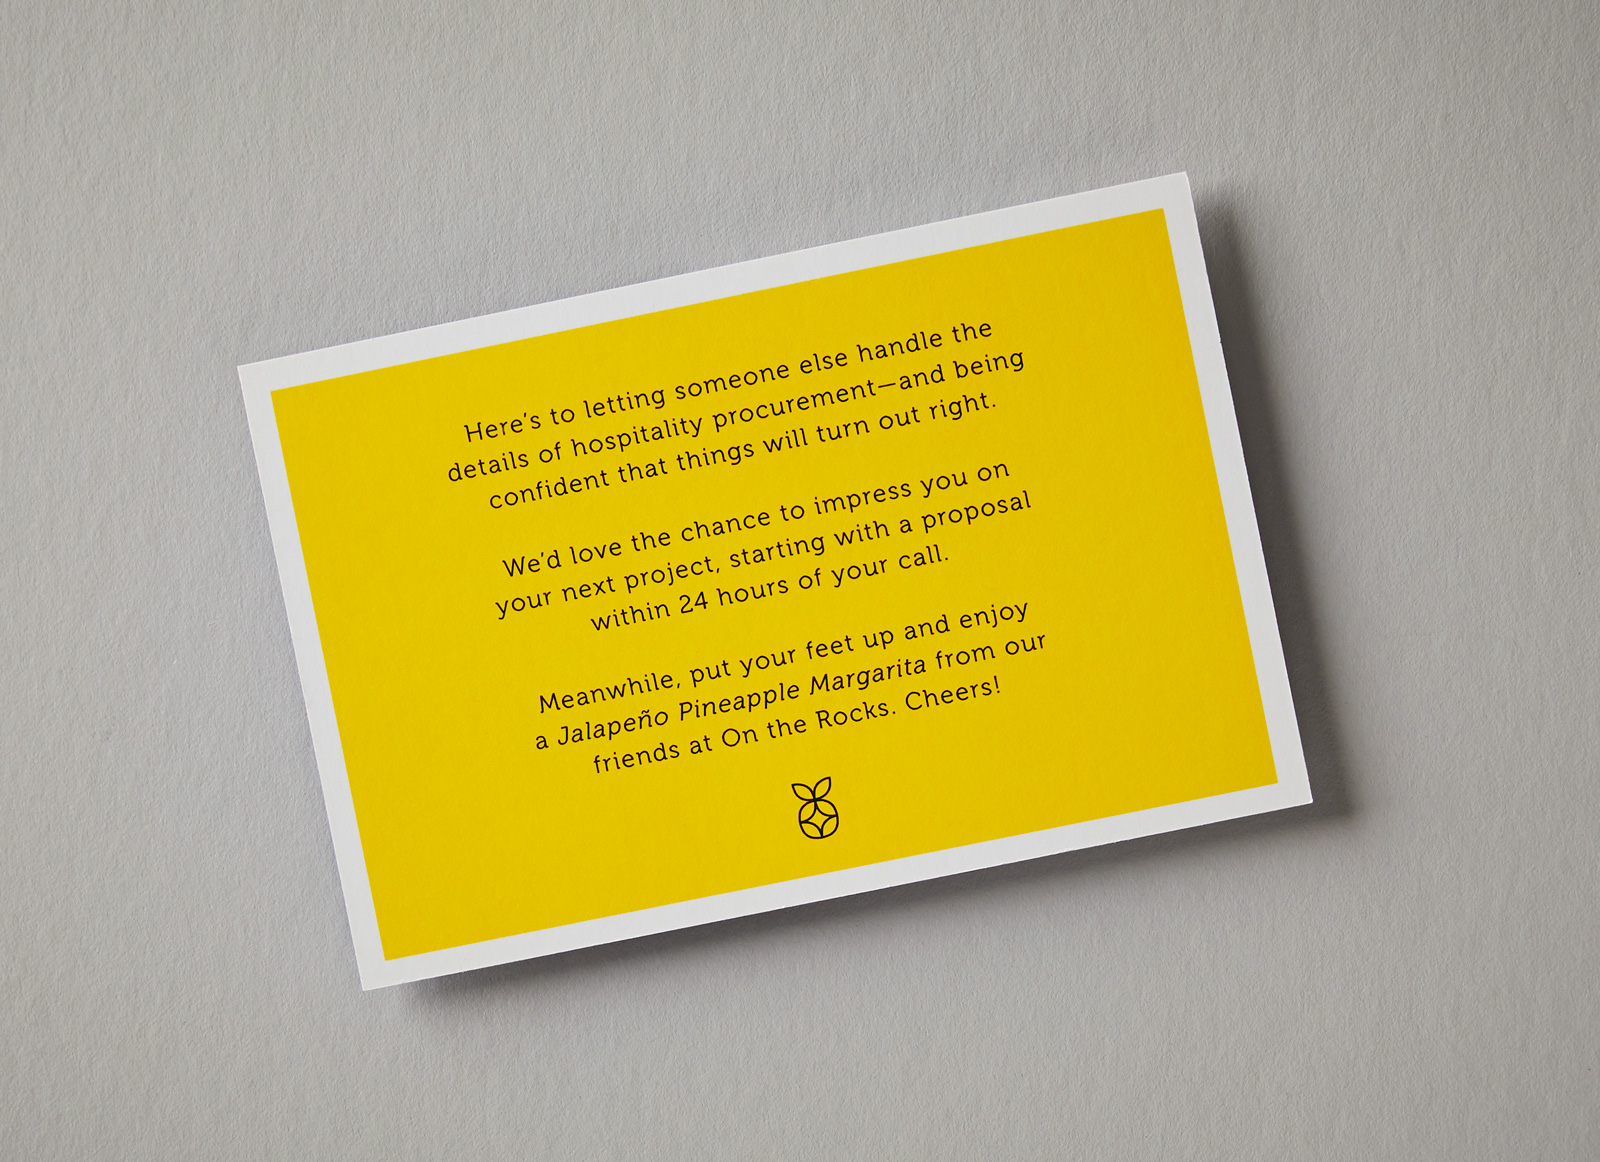 A yellow notecard from Pineapple Procurement on a gray background.